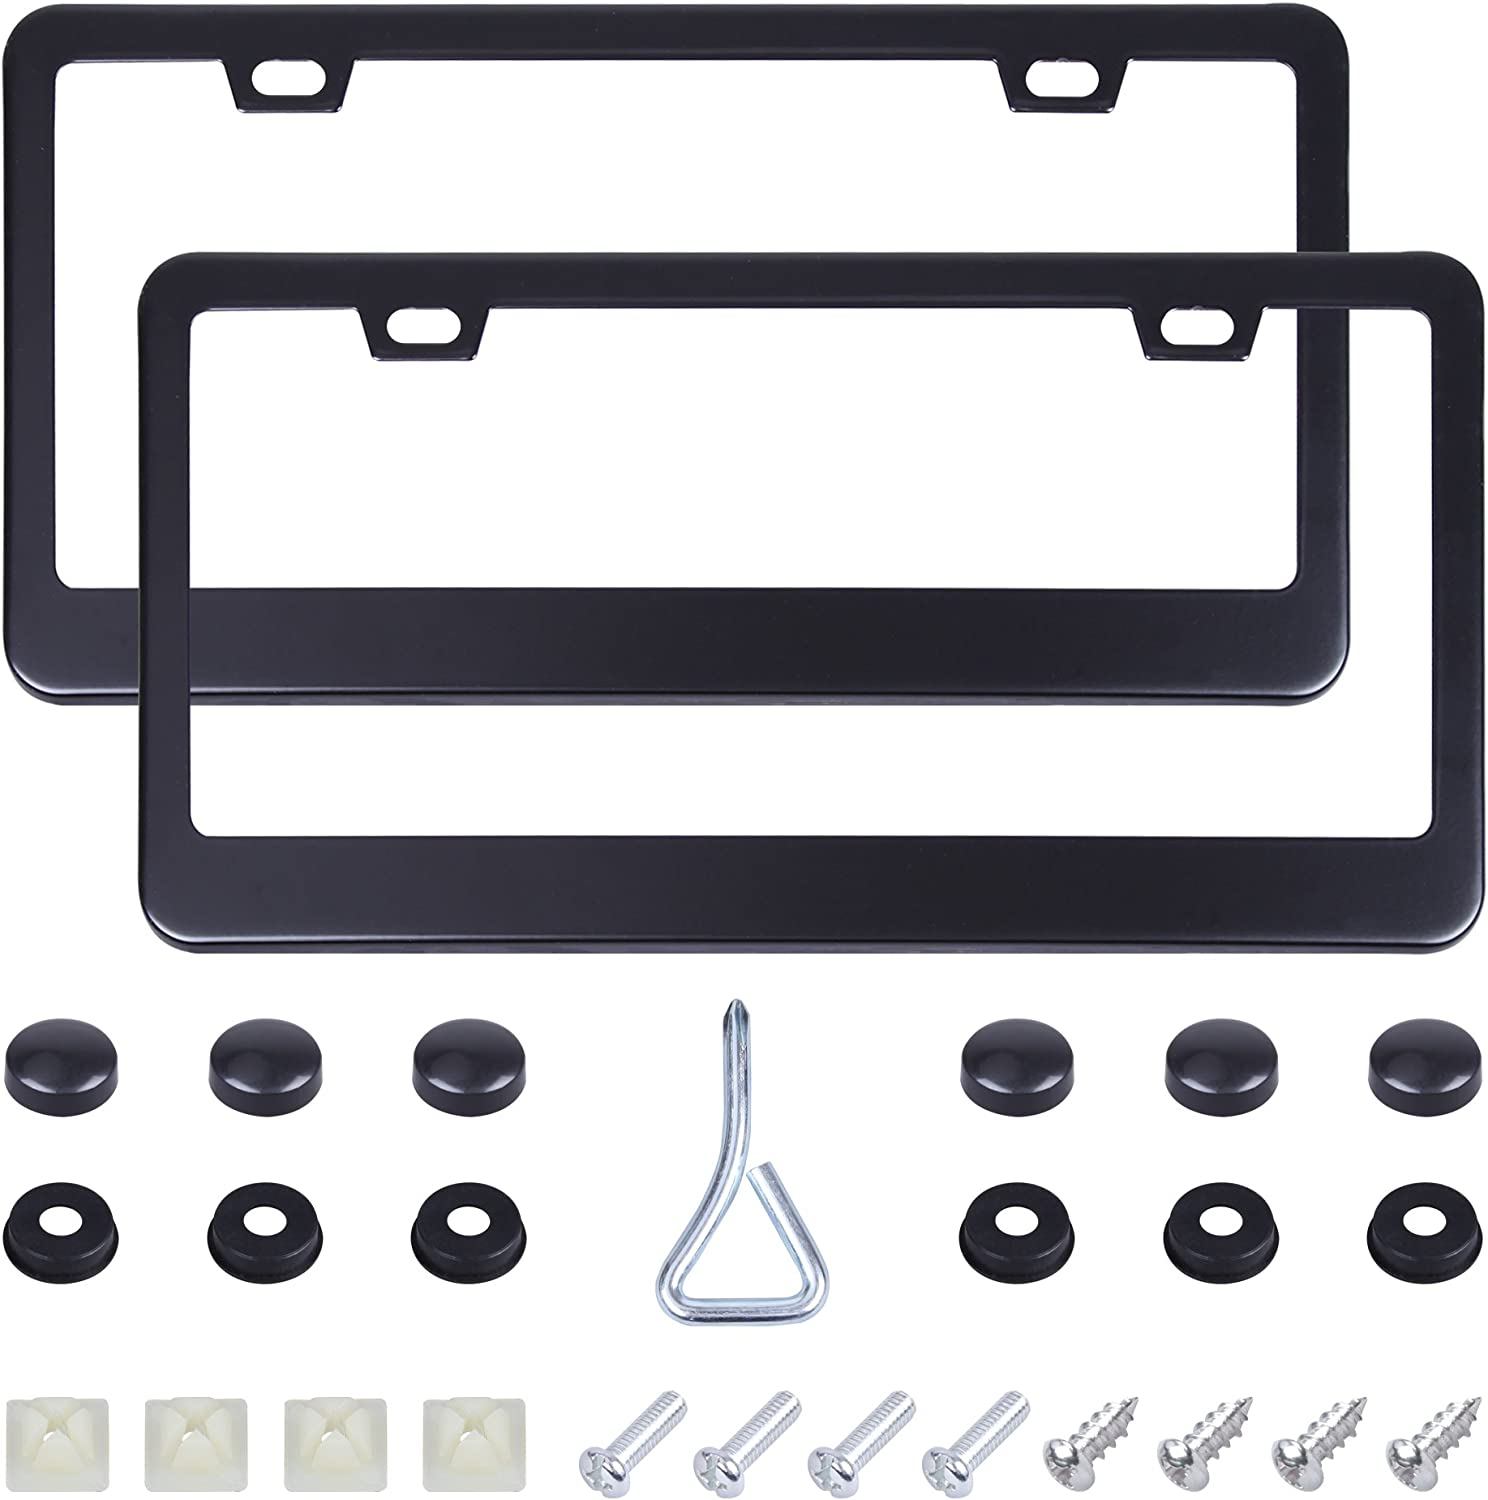 Stainless Steel Car Licence Plate 2 PCS with Screws Washers Caps for US Standard CARTMAN 2 Holes Black License Plate Frame